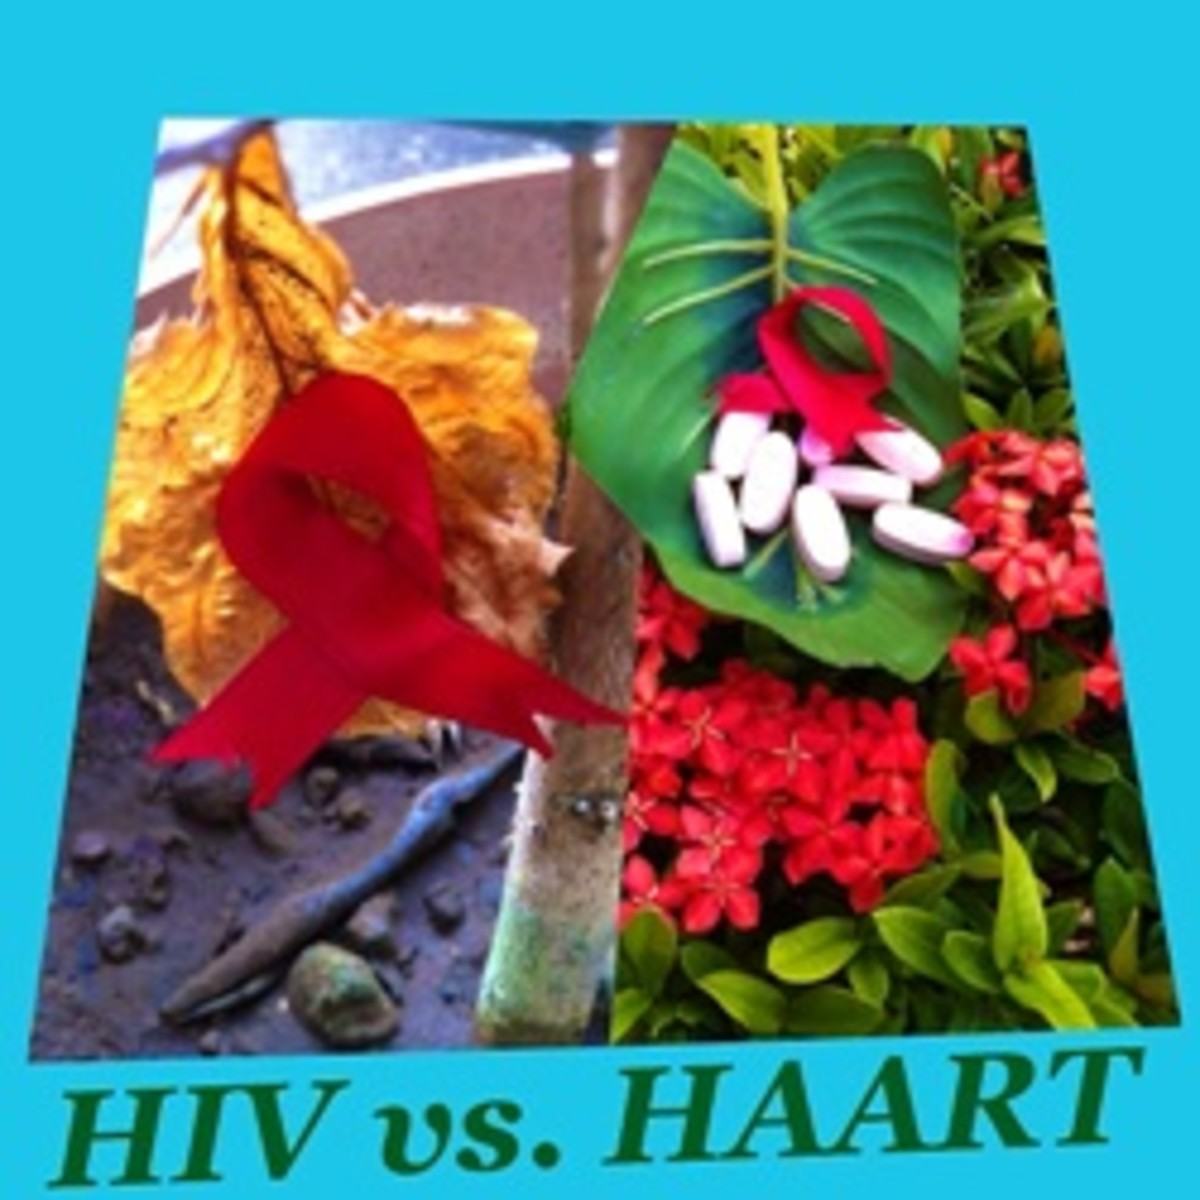 The battle between HIV and HAART